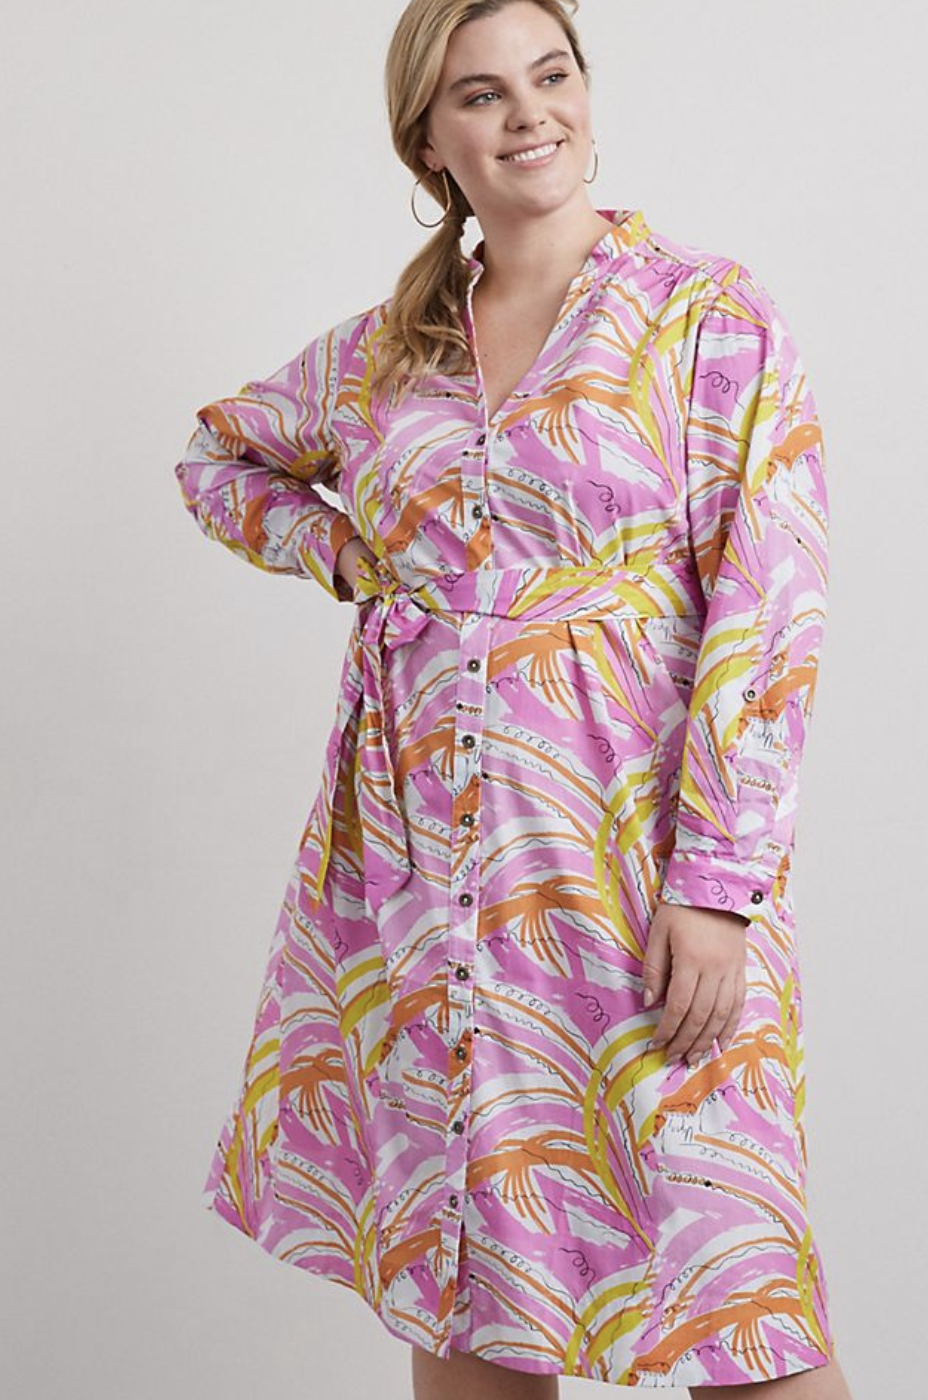 Model in button down long sleeved dress with orange and yellow trees printed on it